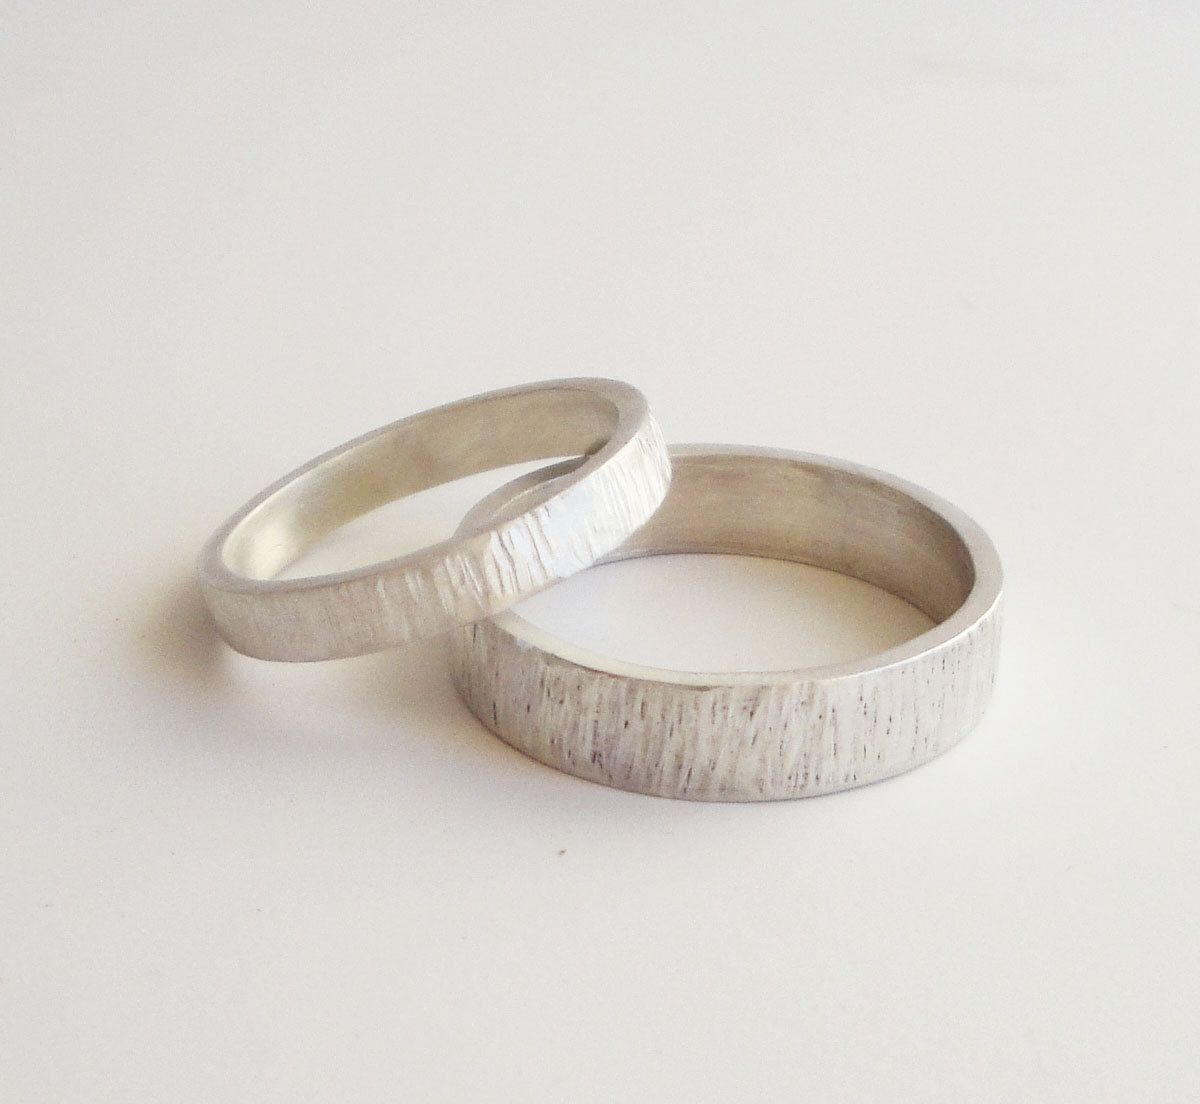 Simple Engraved Wedding Rings Handmade Hammered By Katerinaki1977 90 00